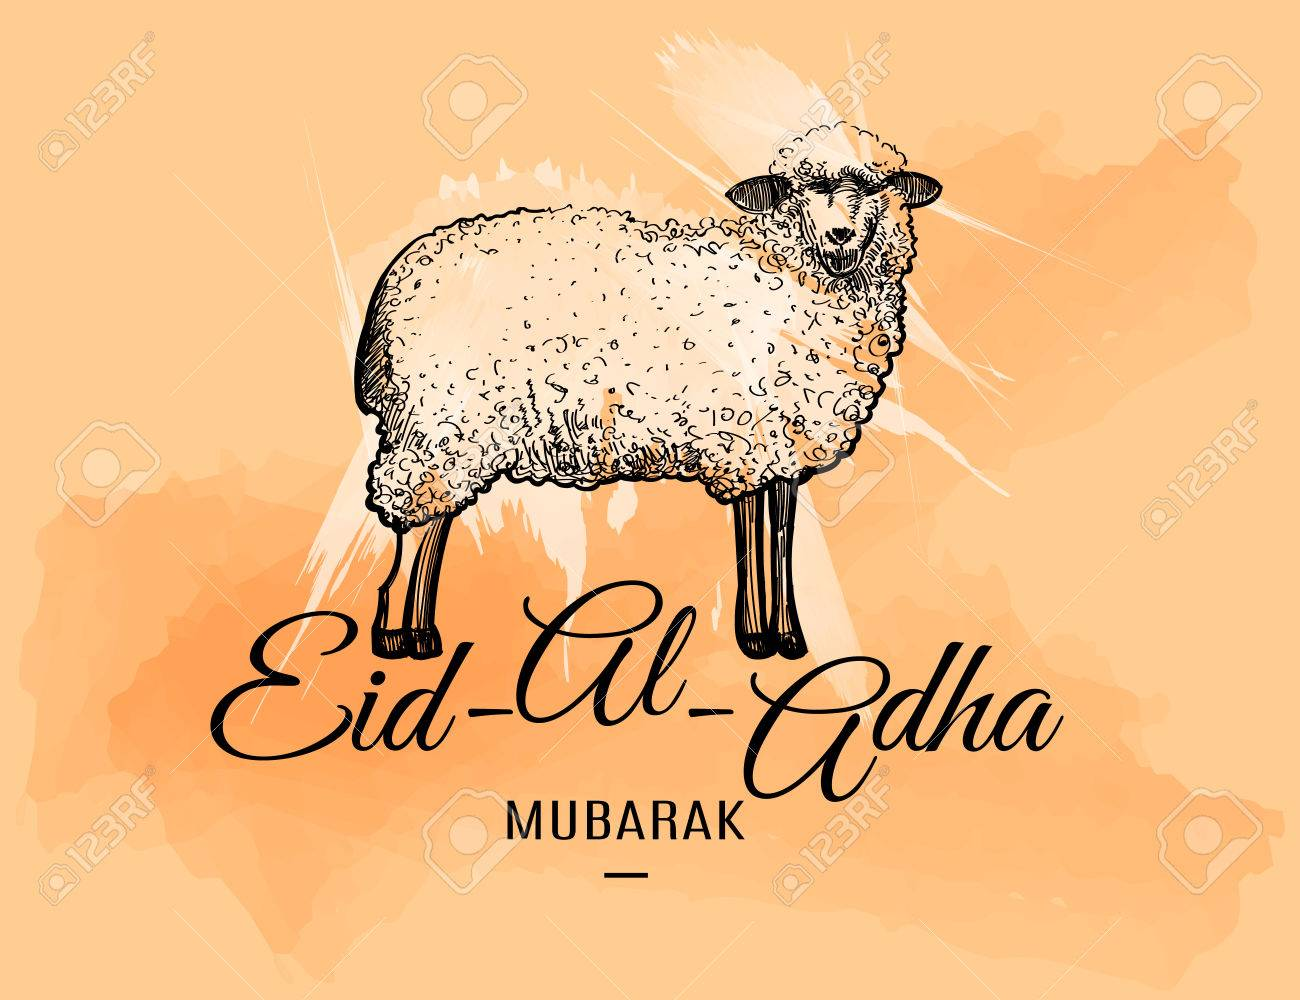 Eid Al Adha Greeting Card With Doodle Sheep On Watercolor Spots